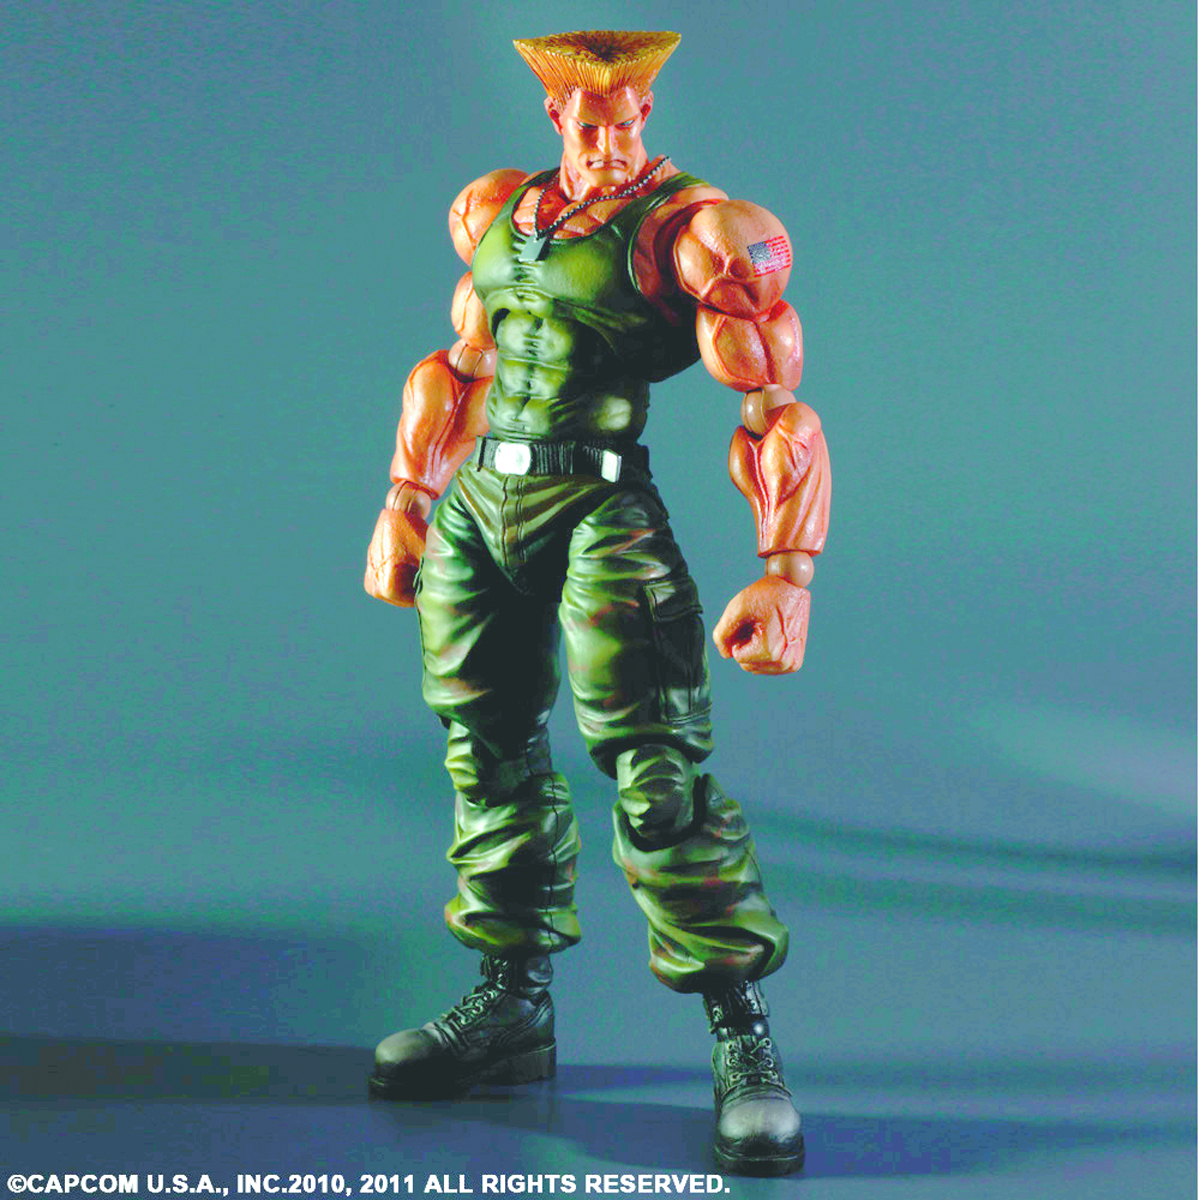 SUPER STREET FIGHTER IV PLAY ARTS KAI GUILE AF